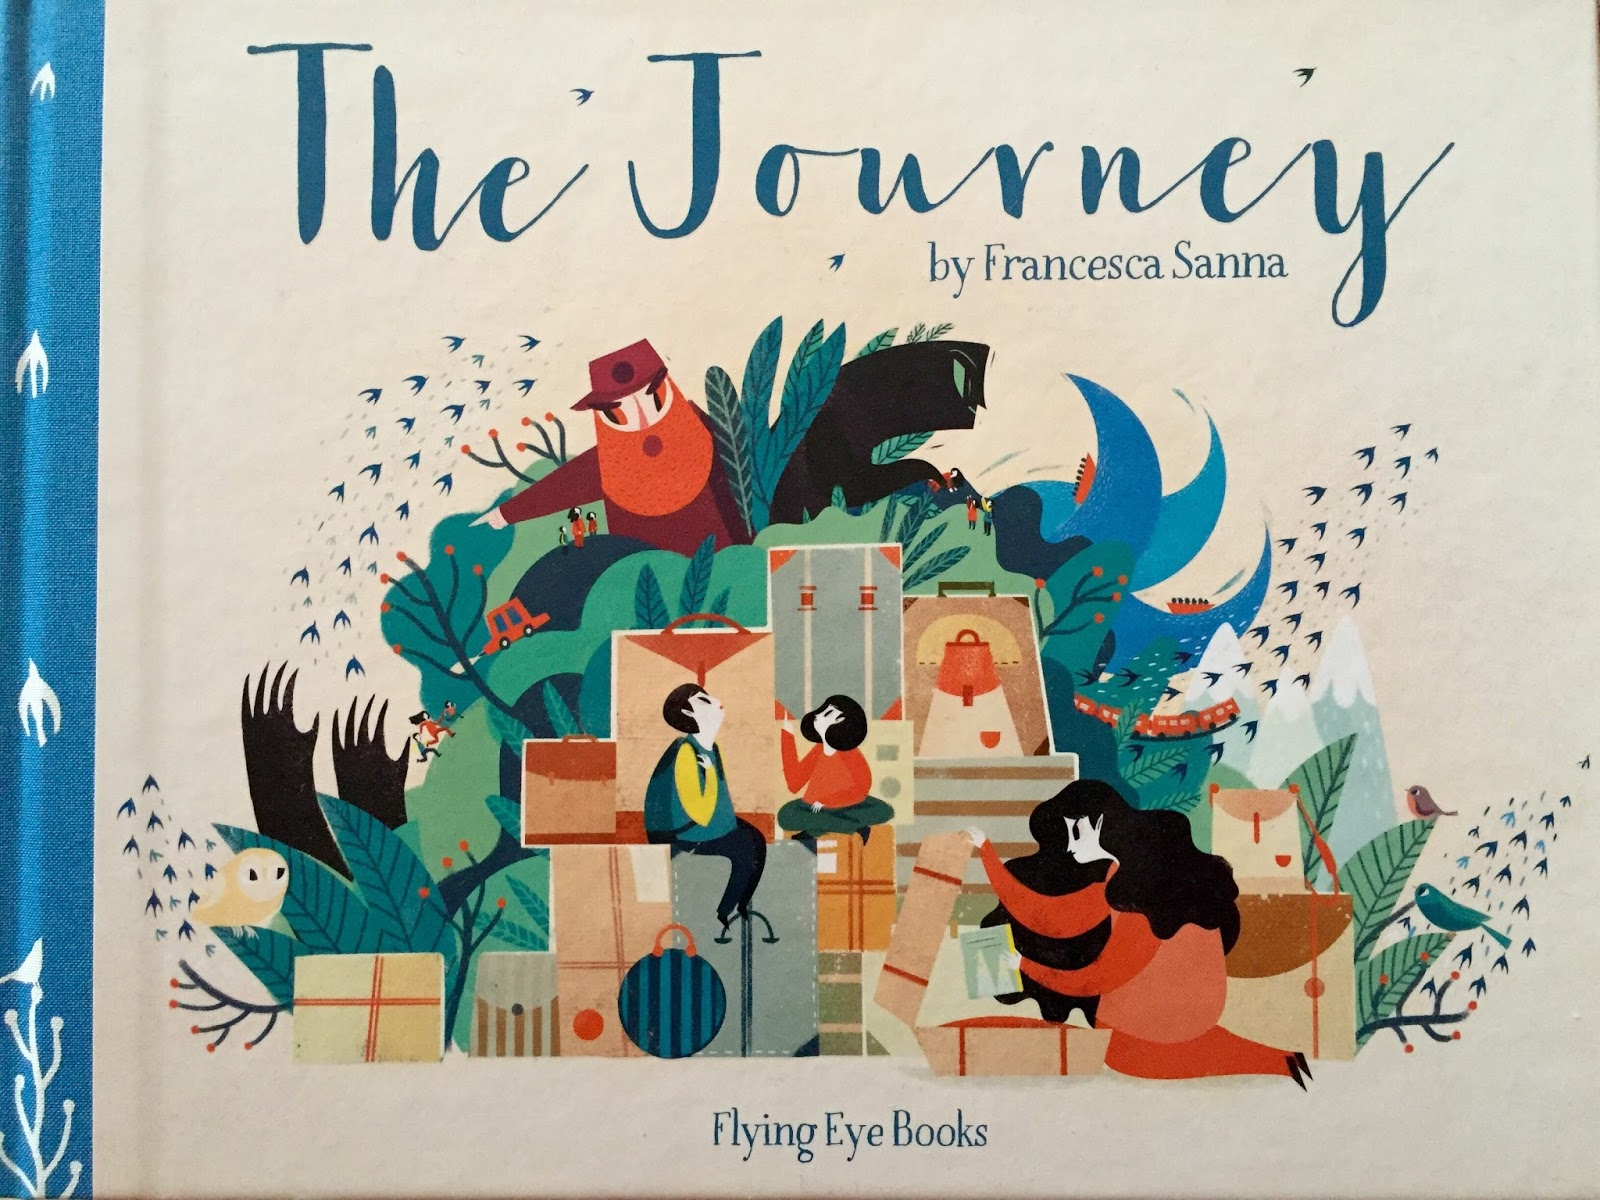 125 water street american booksellers association picture books the journey by francesca sanna flying eye books there were many wonderful picture books that came out this year but this one is something malvernweather Image collections